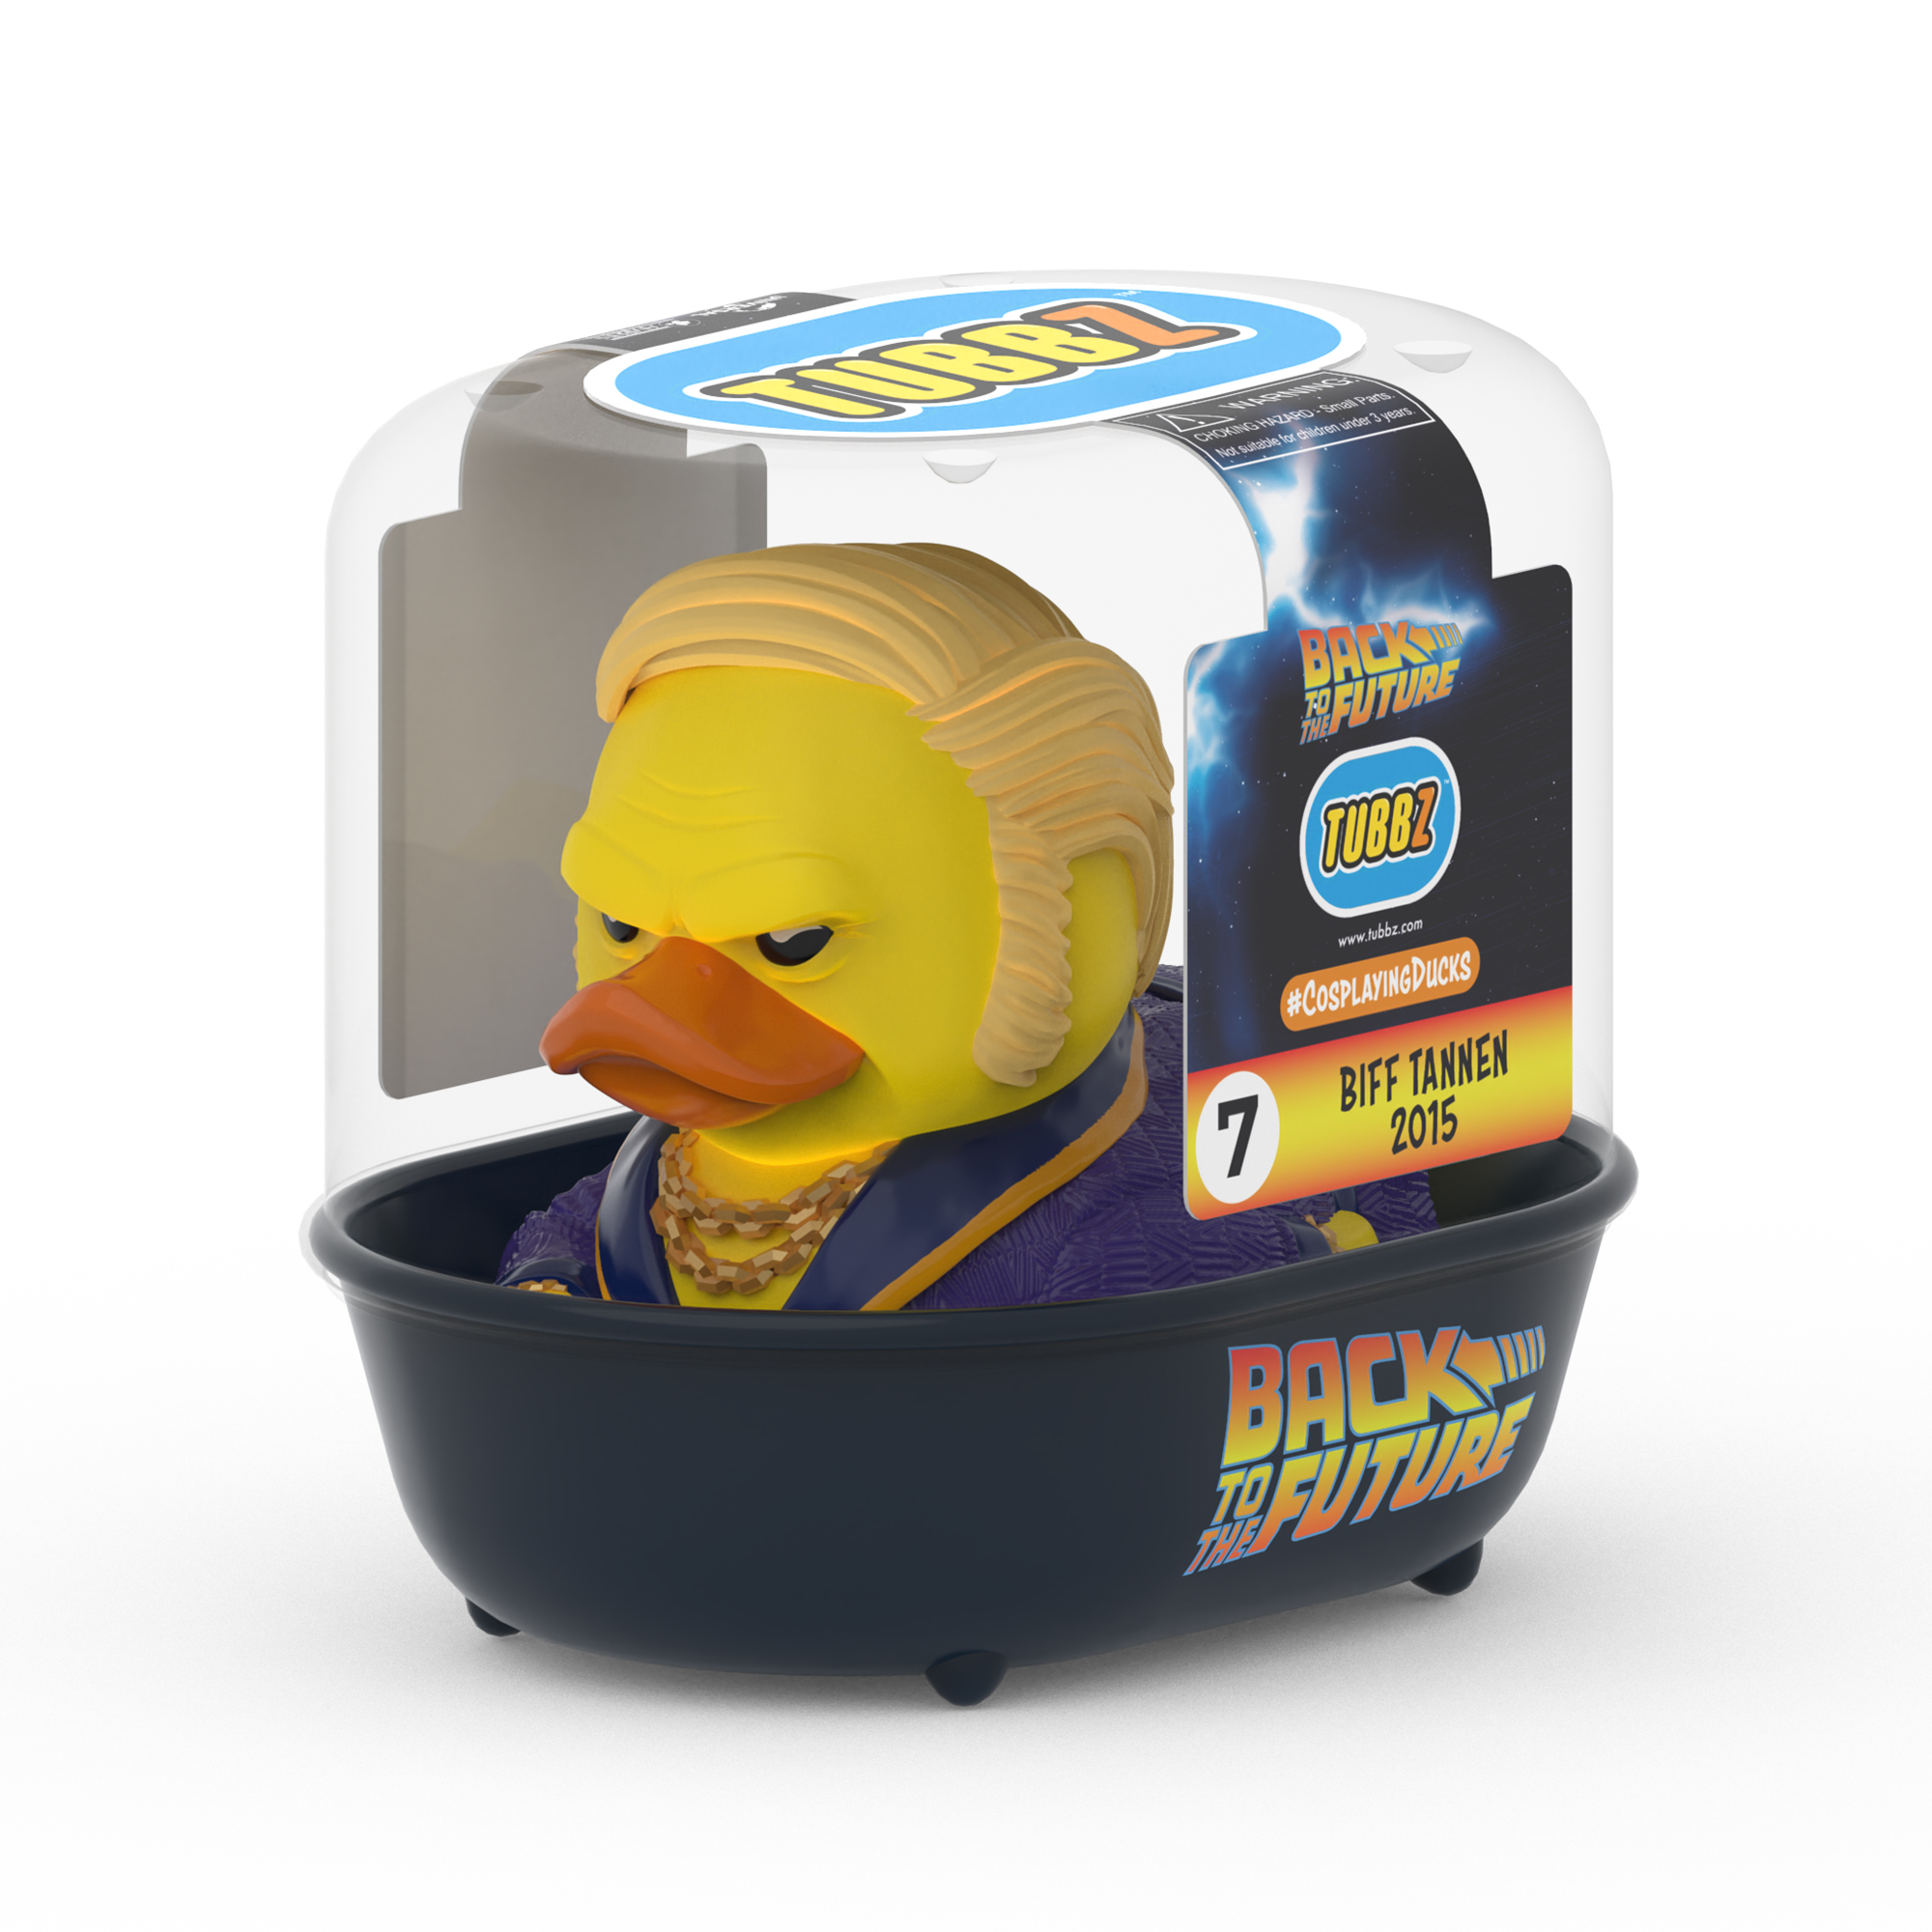 Back To The Future Biff Tannen 2015 TUBBZ Cosplaying Duck Collectible